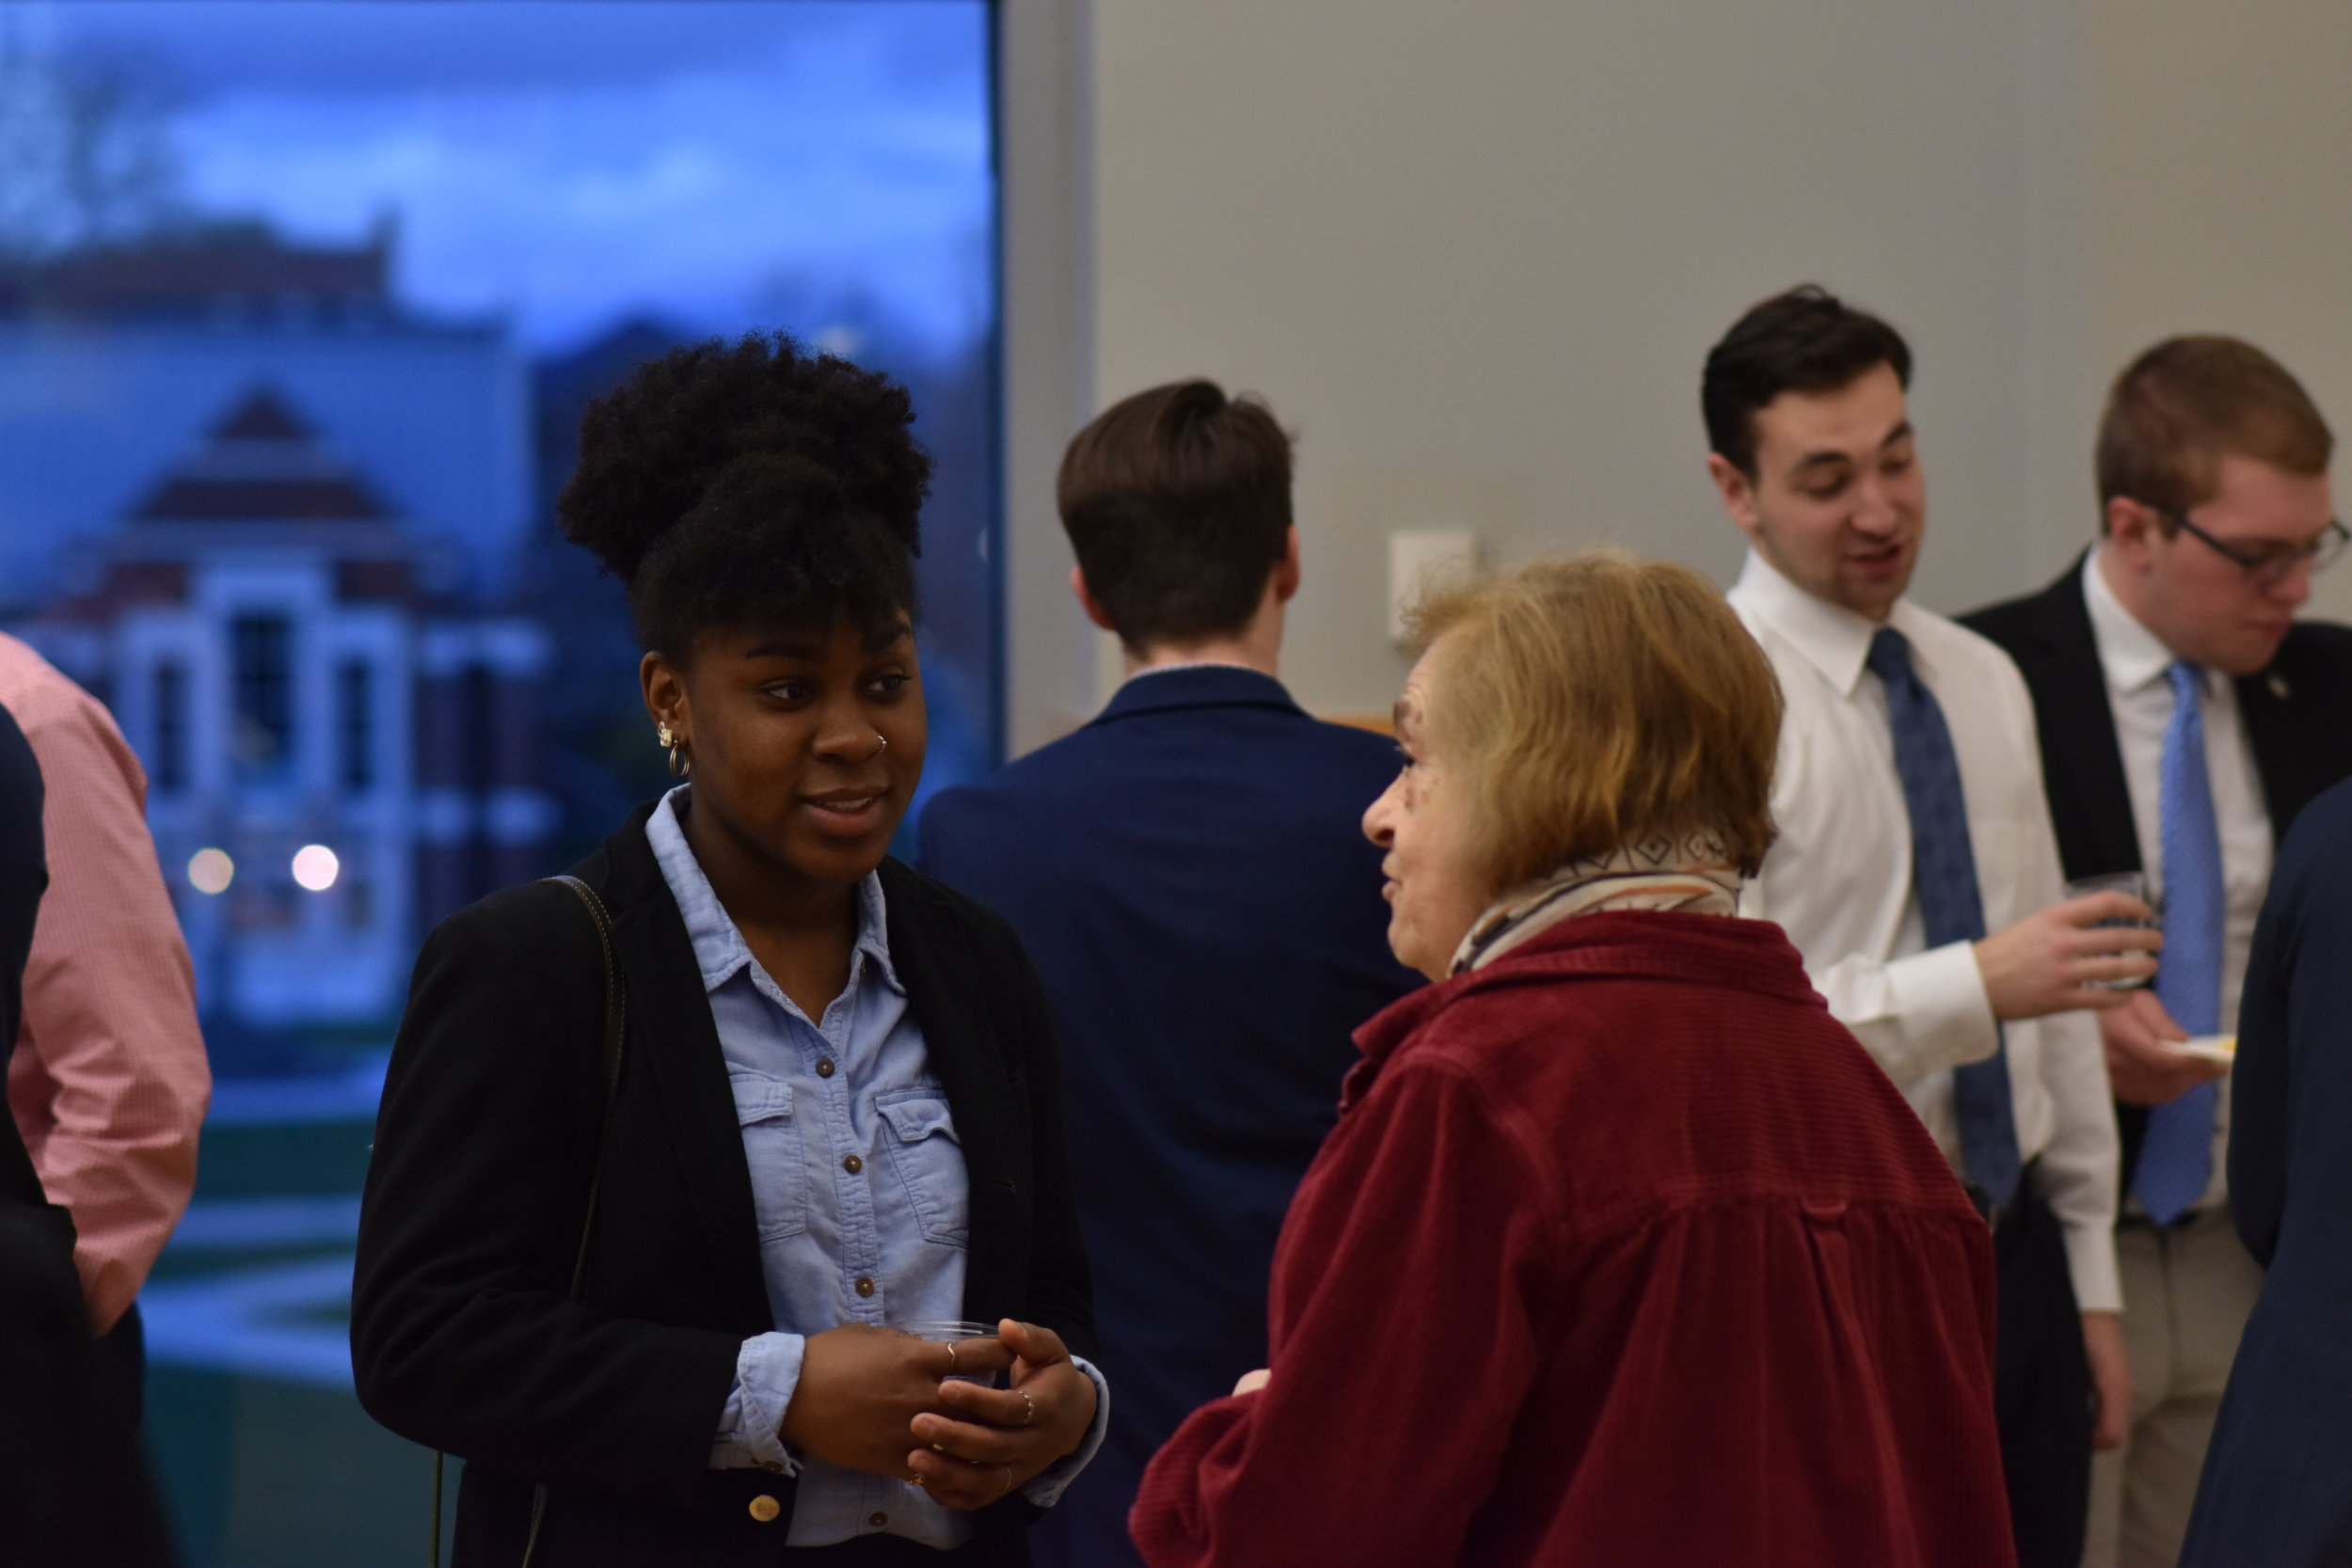 Local and state officials meet with USG members at the 2019 government reception in the Student Union on Monday. Attendees conversed and enjoyed light refreshments as they networked and built relationships. (Kevin Lindstrom/The Daily Campus)